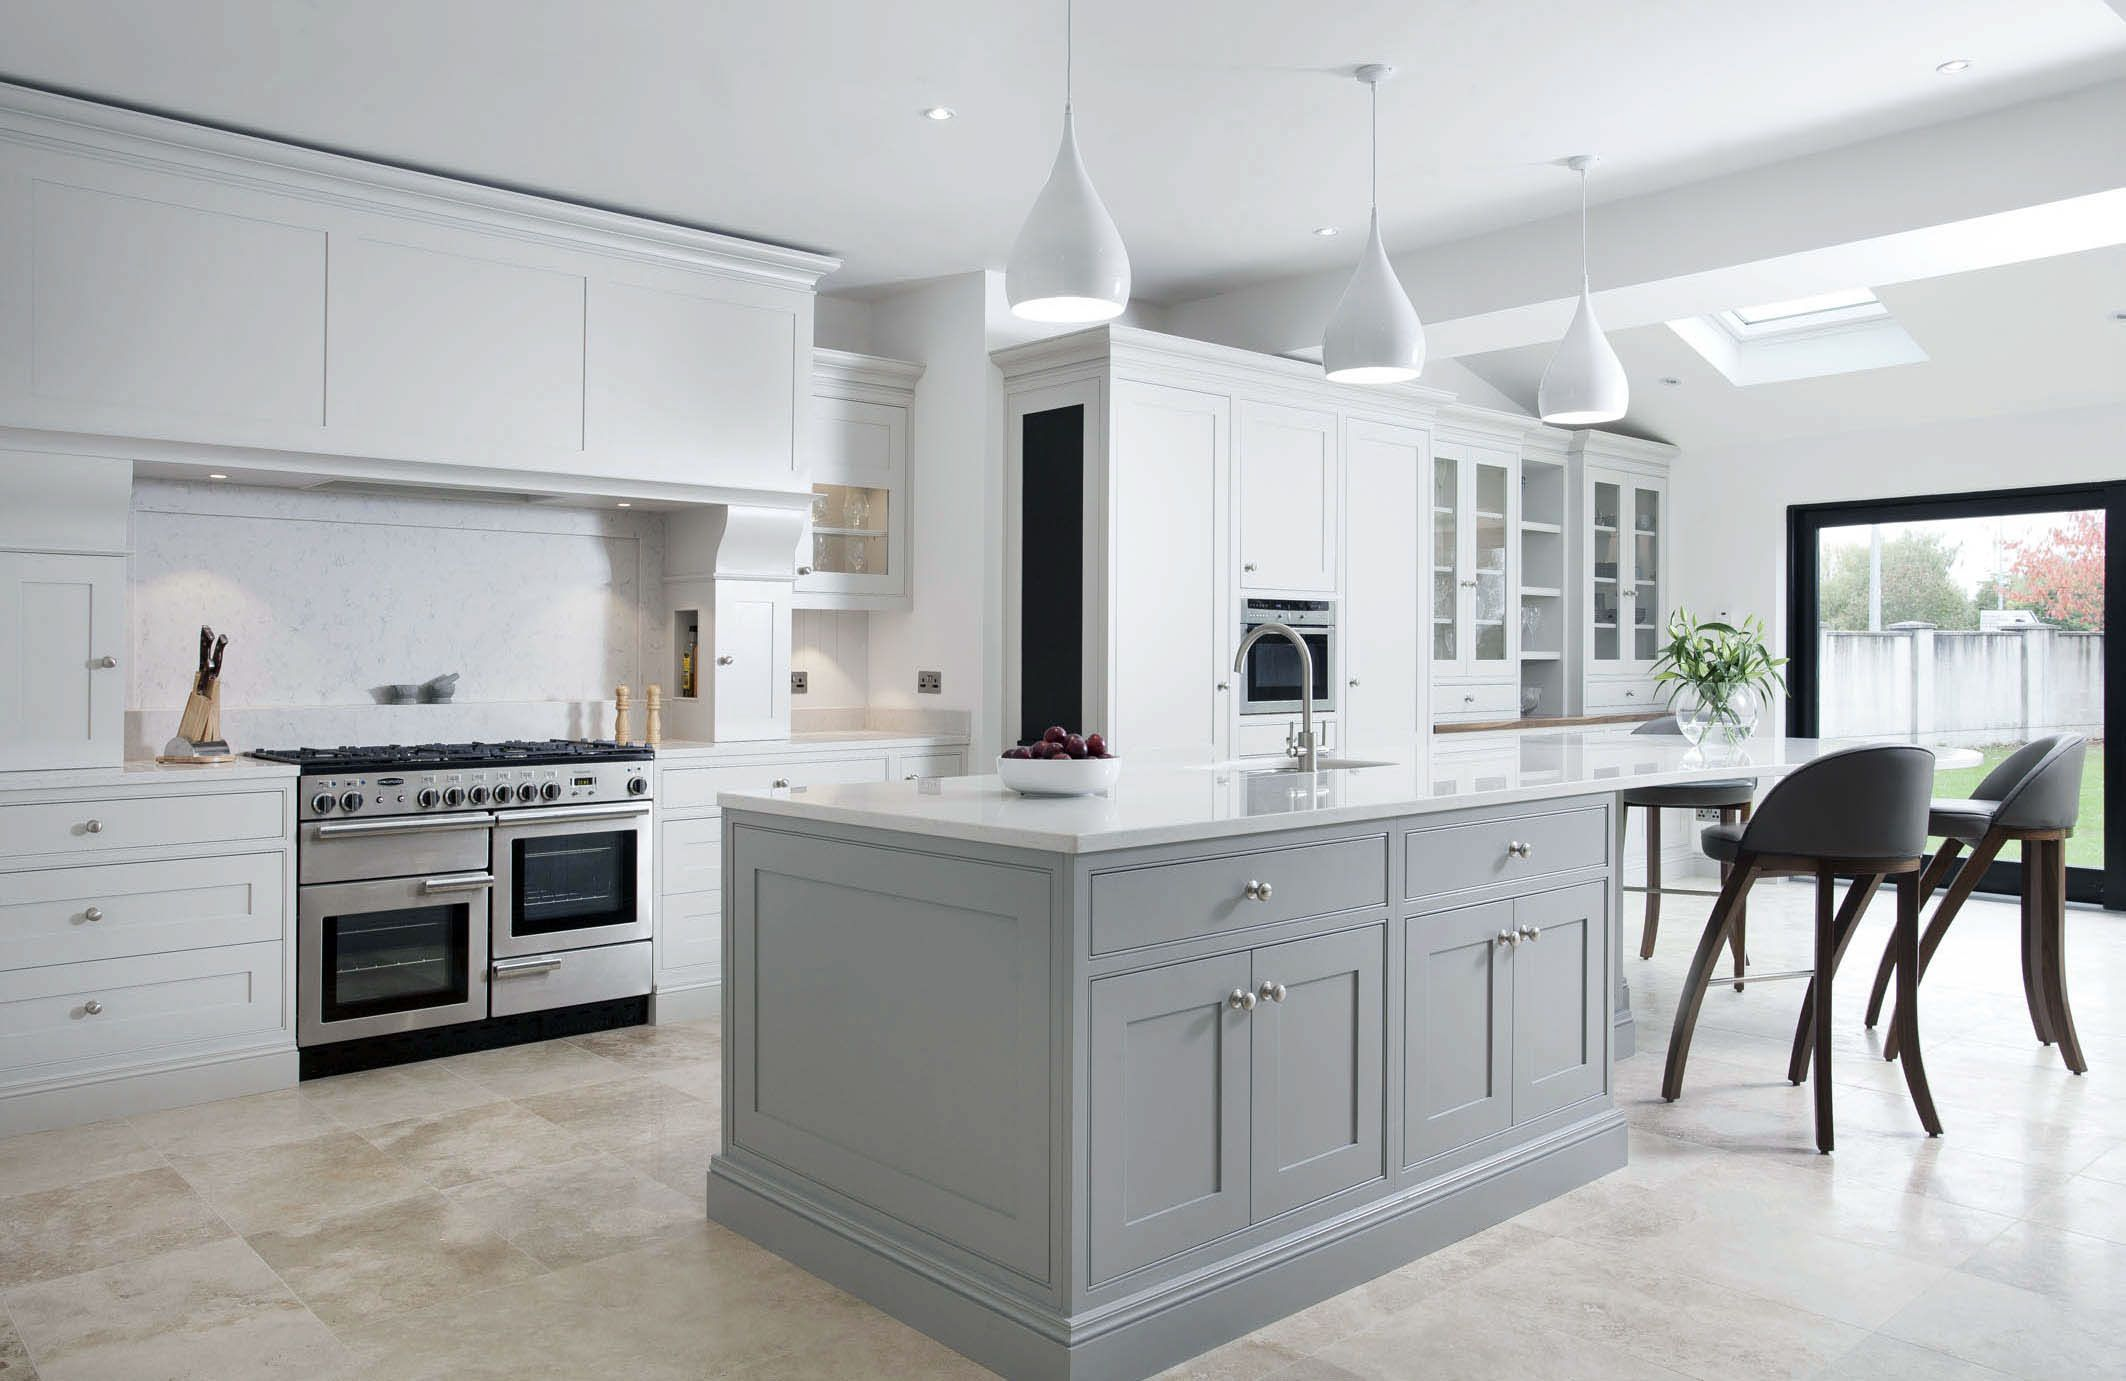 30mm inframe handmade kitchen by Woodale, handpainted in ...